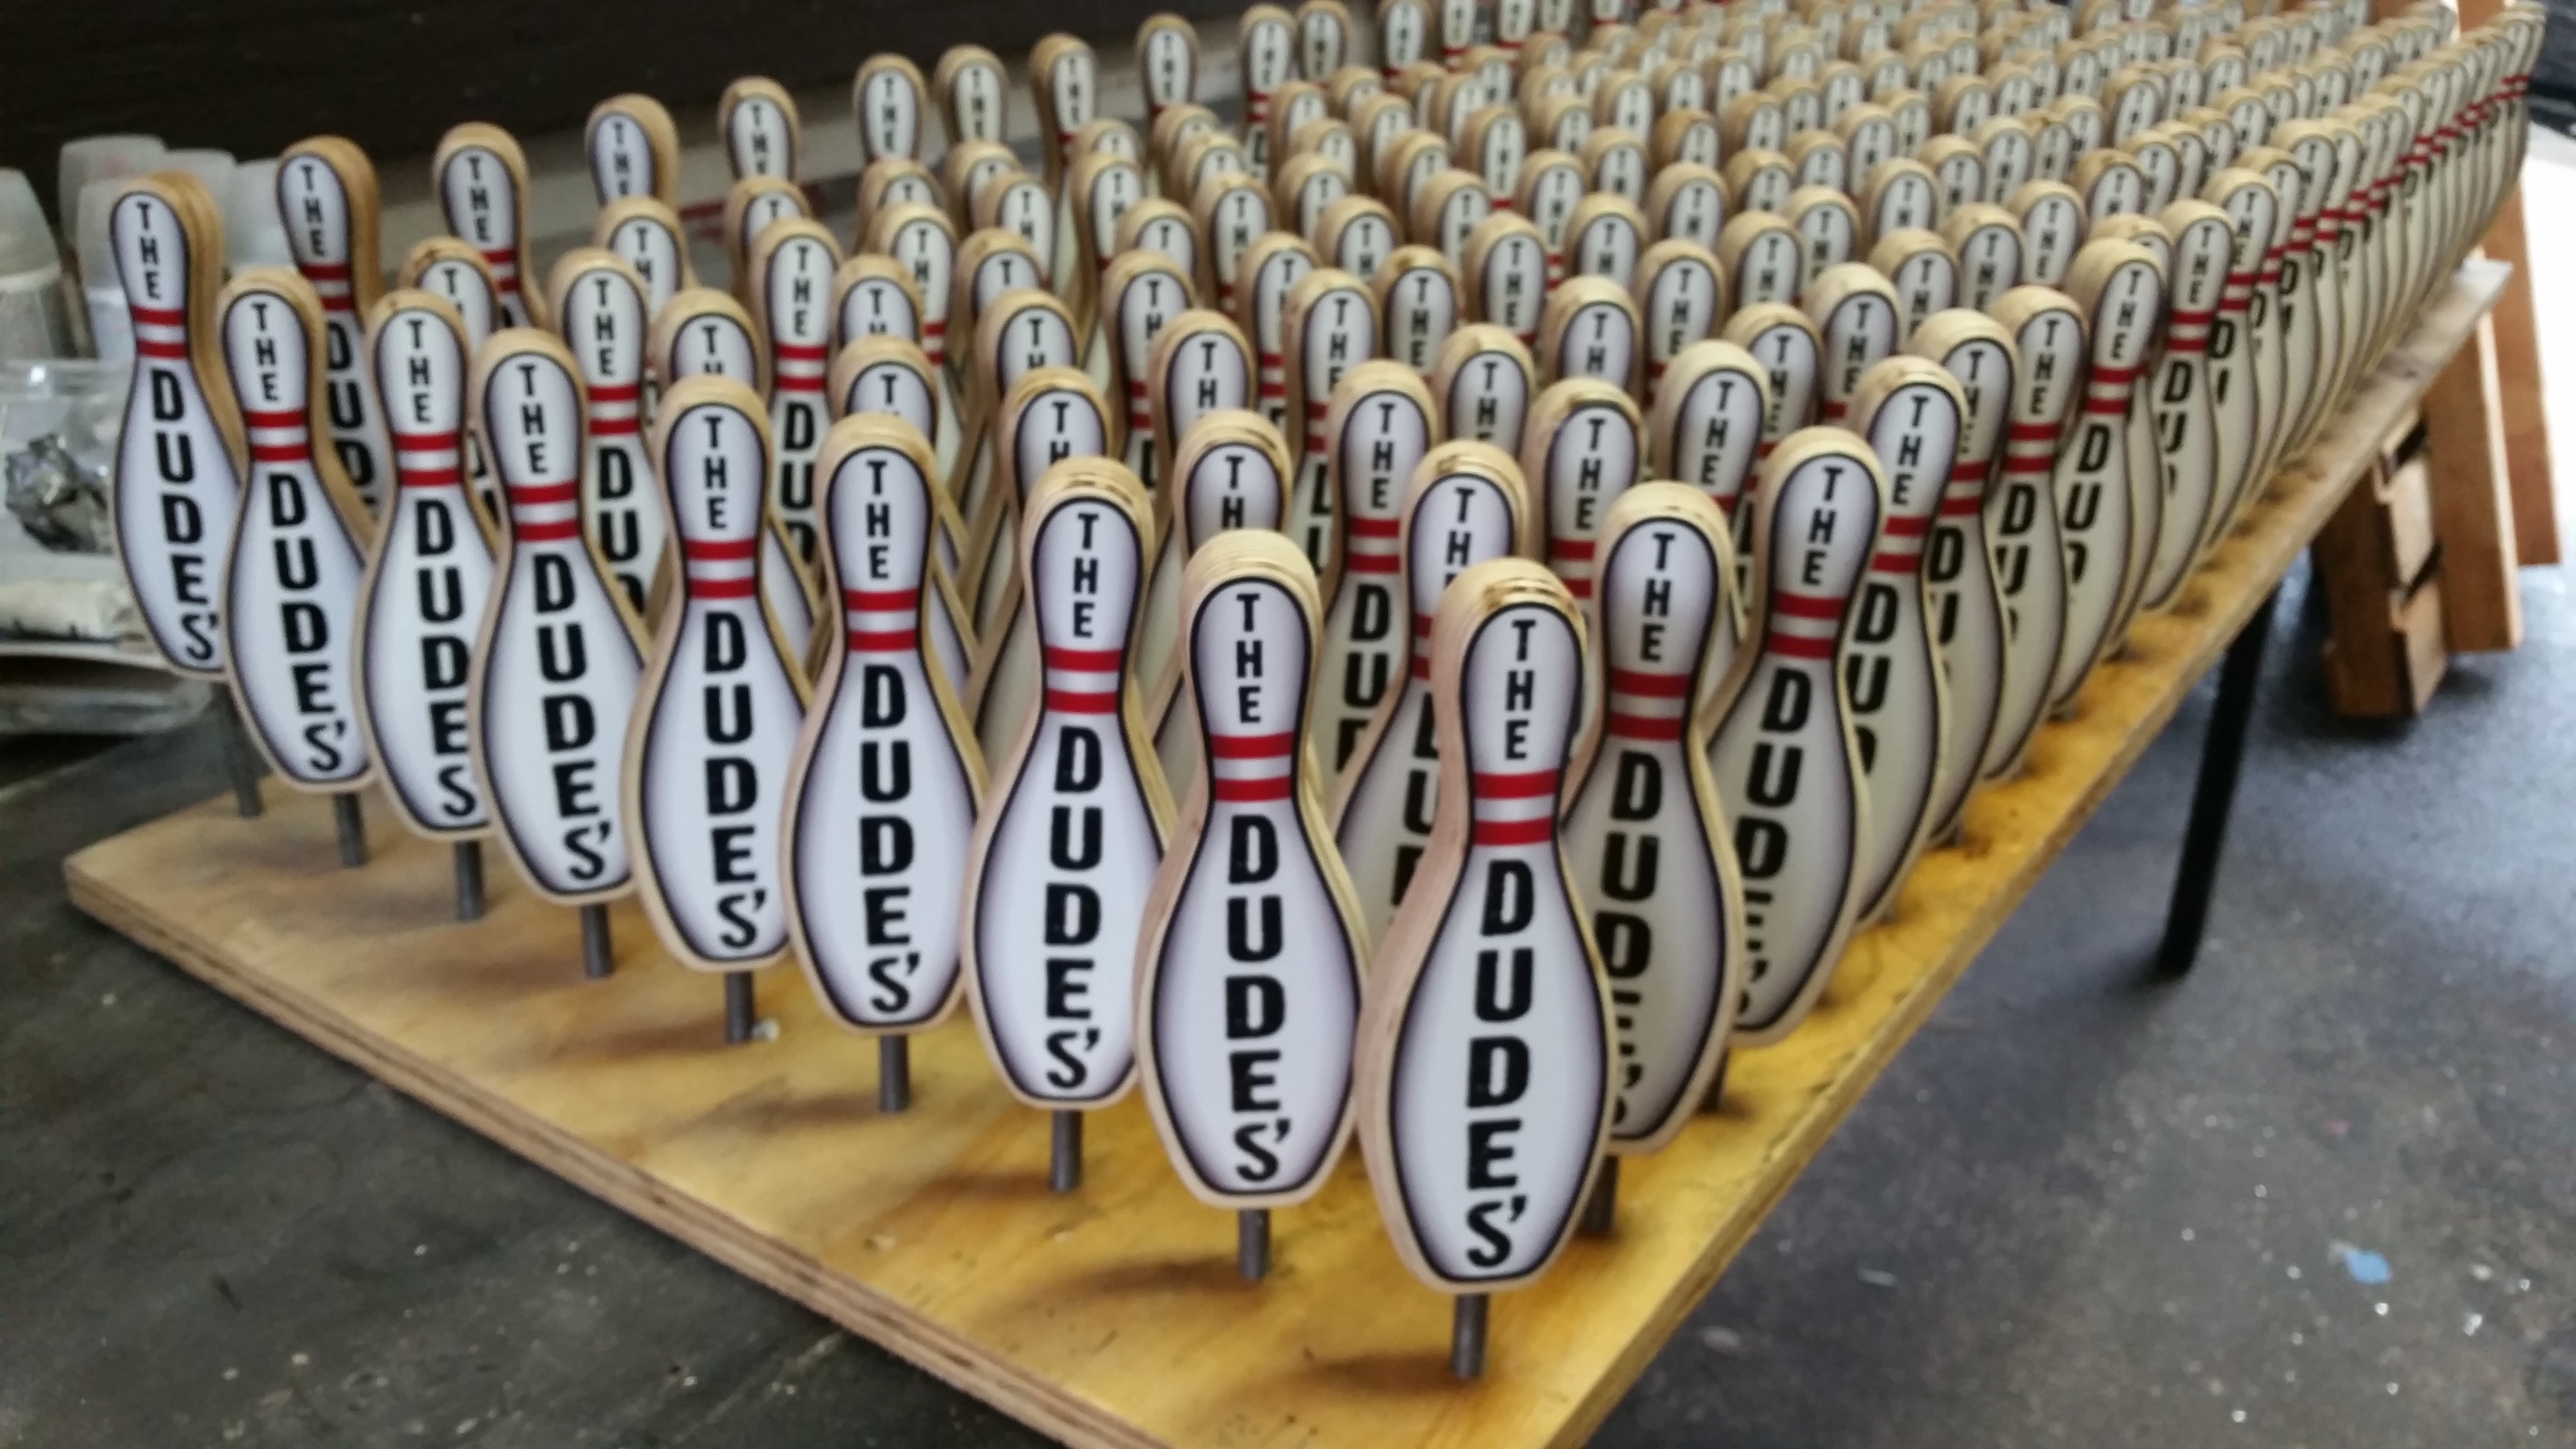 Beer Tap handles